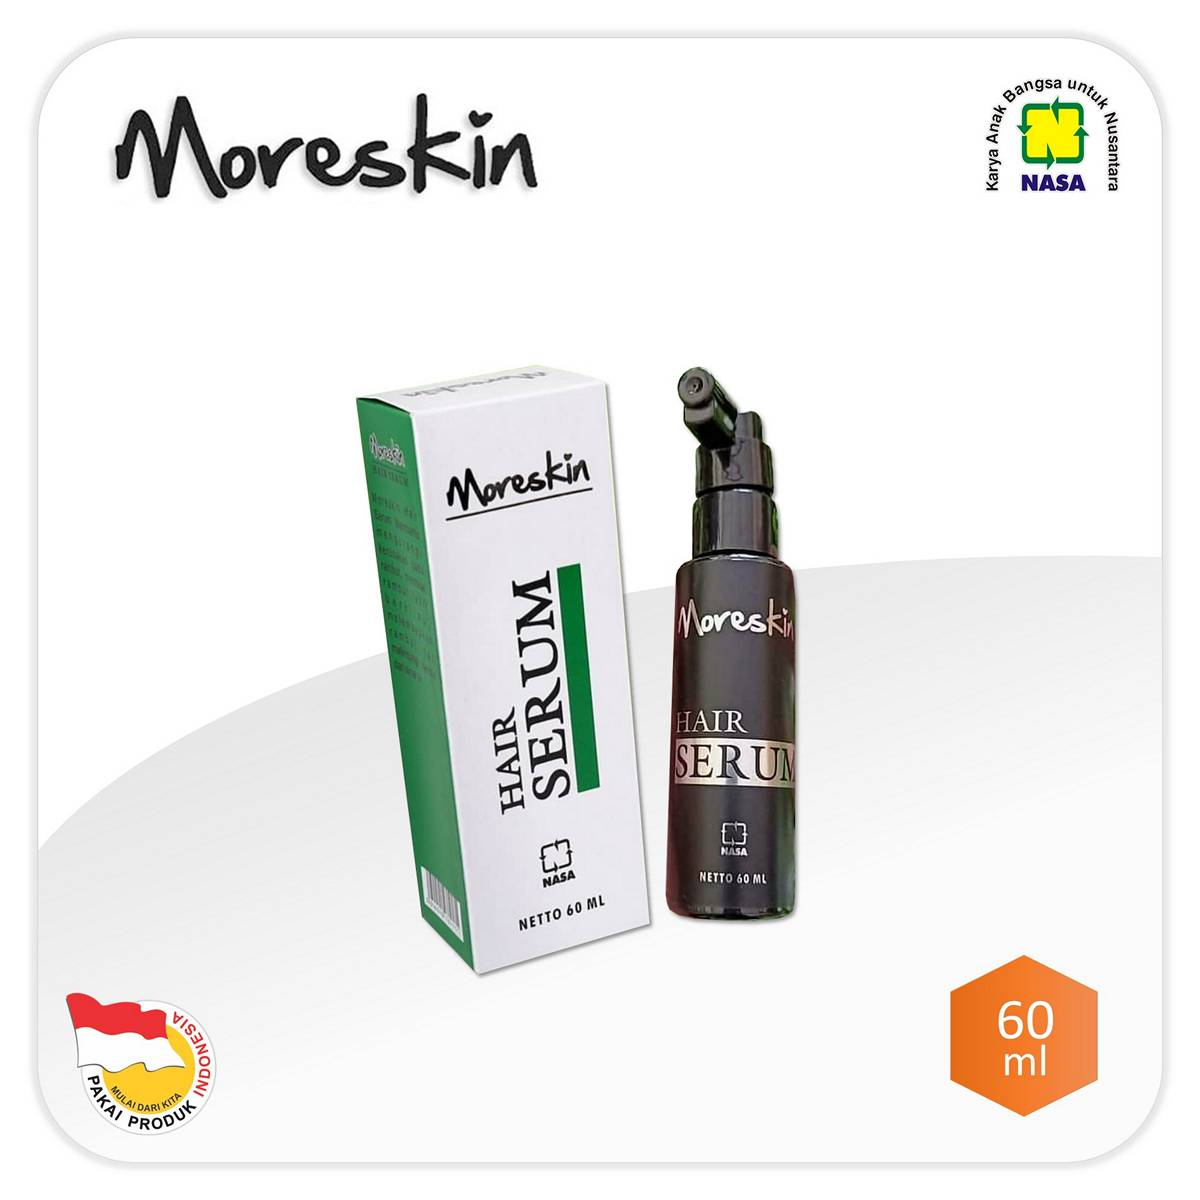 Moreskin Hair Serum NASA